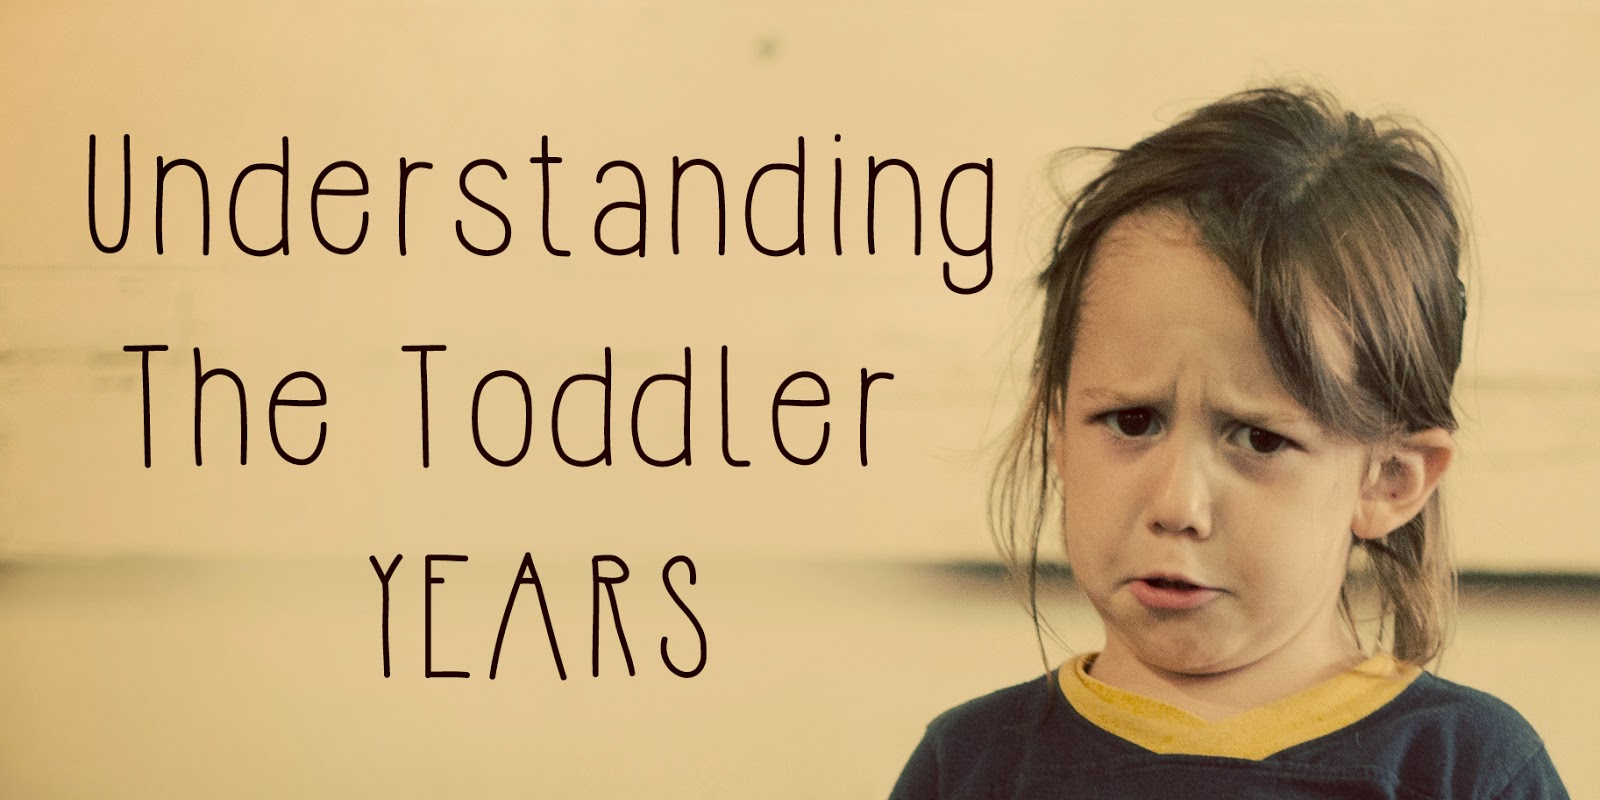 Inside the Mind of a Toddler